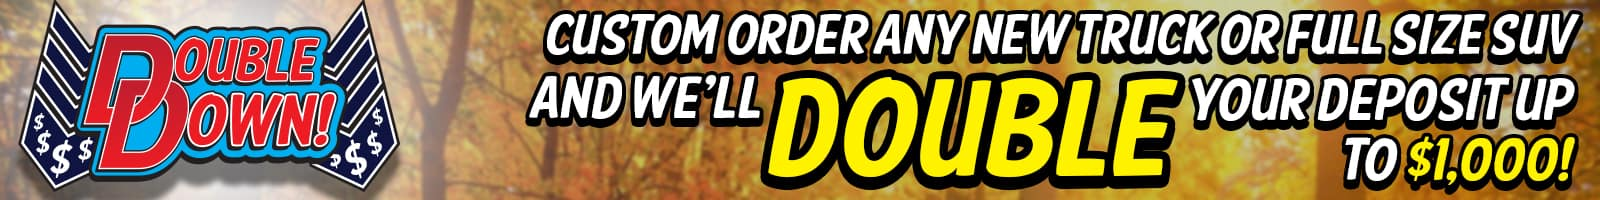 double_down_banner